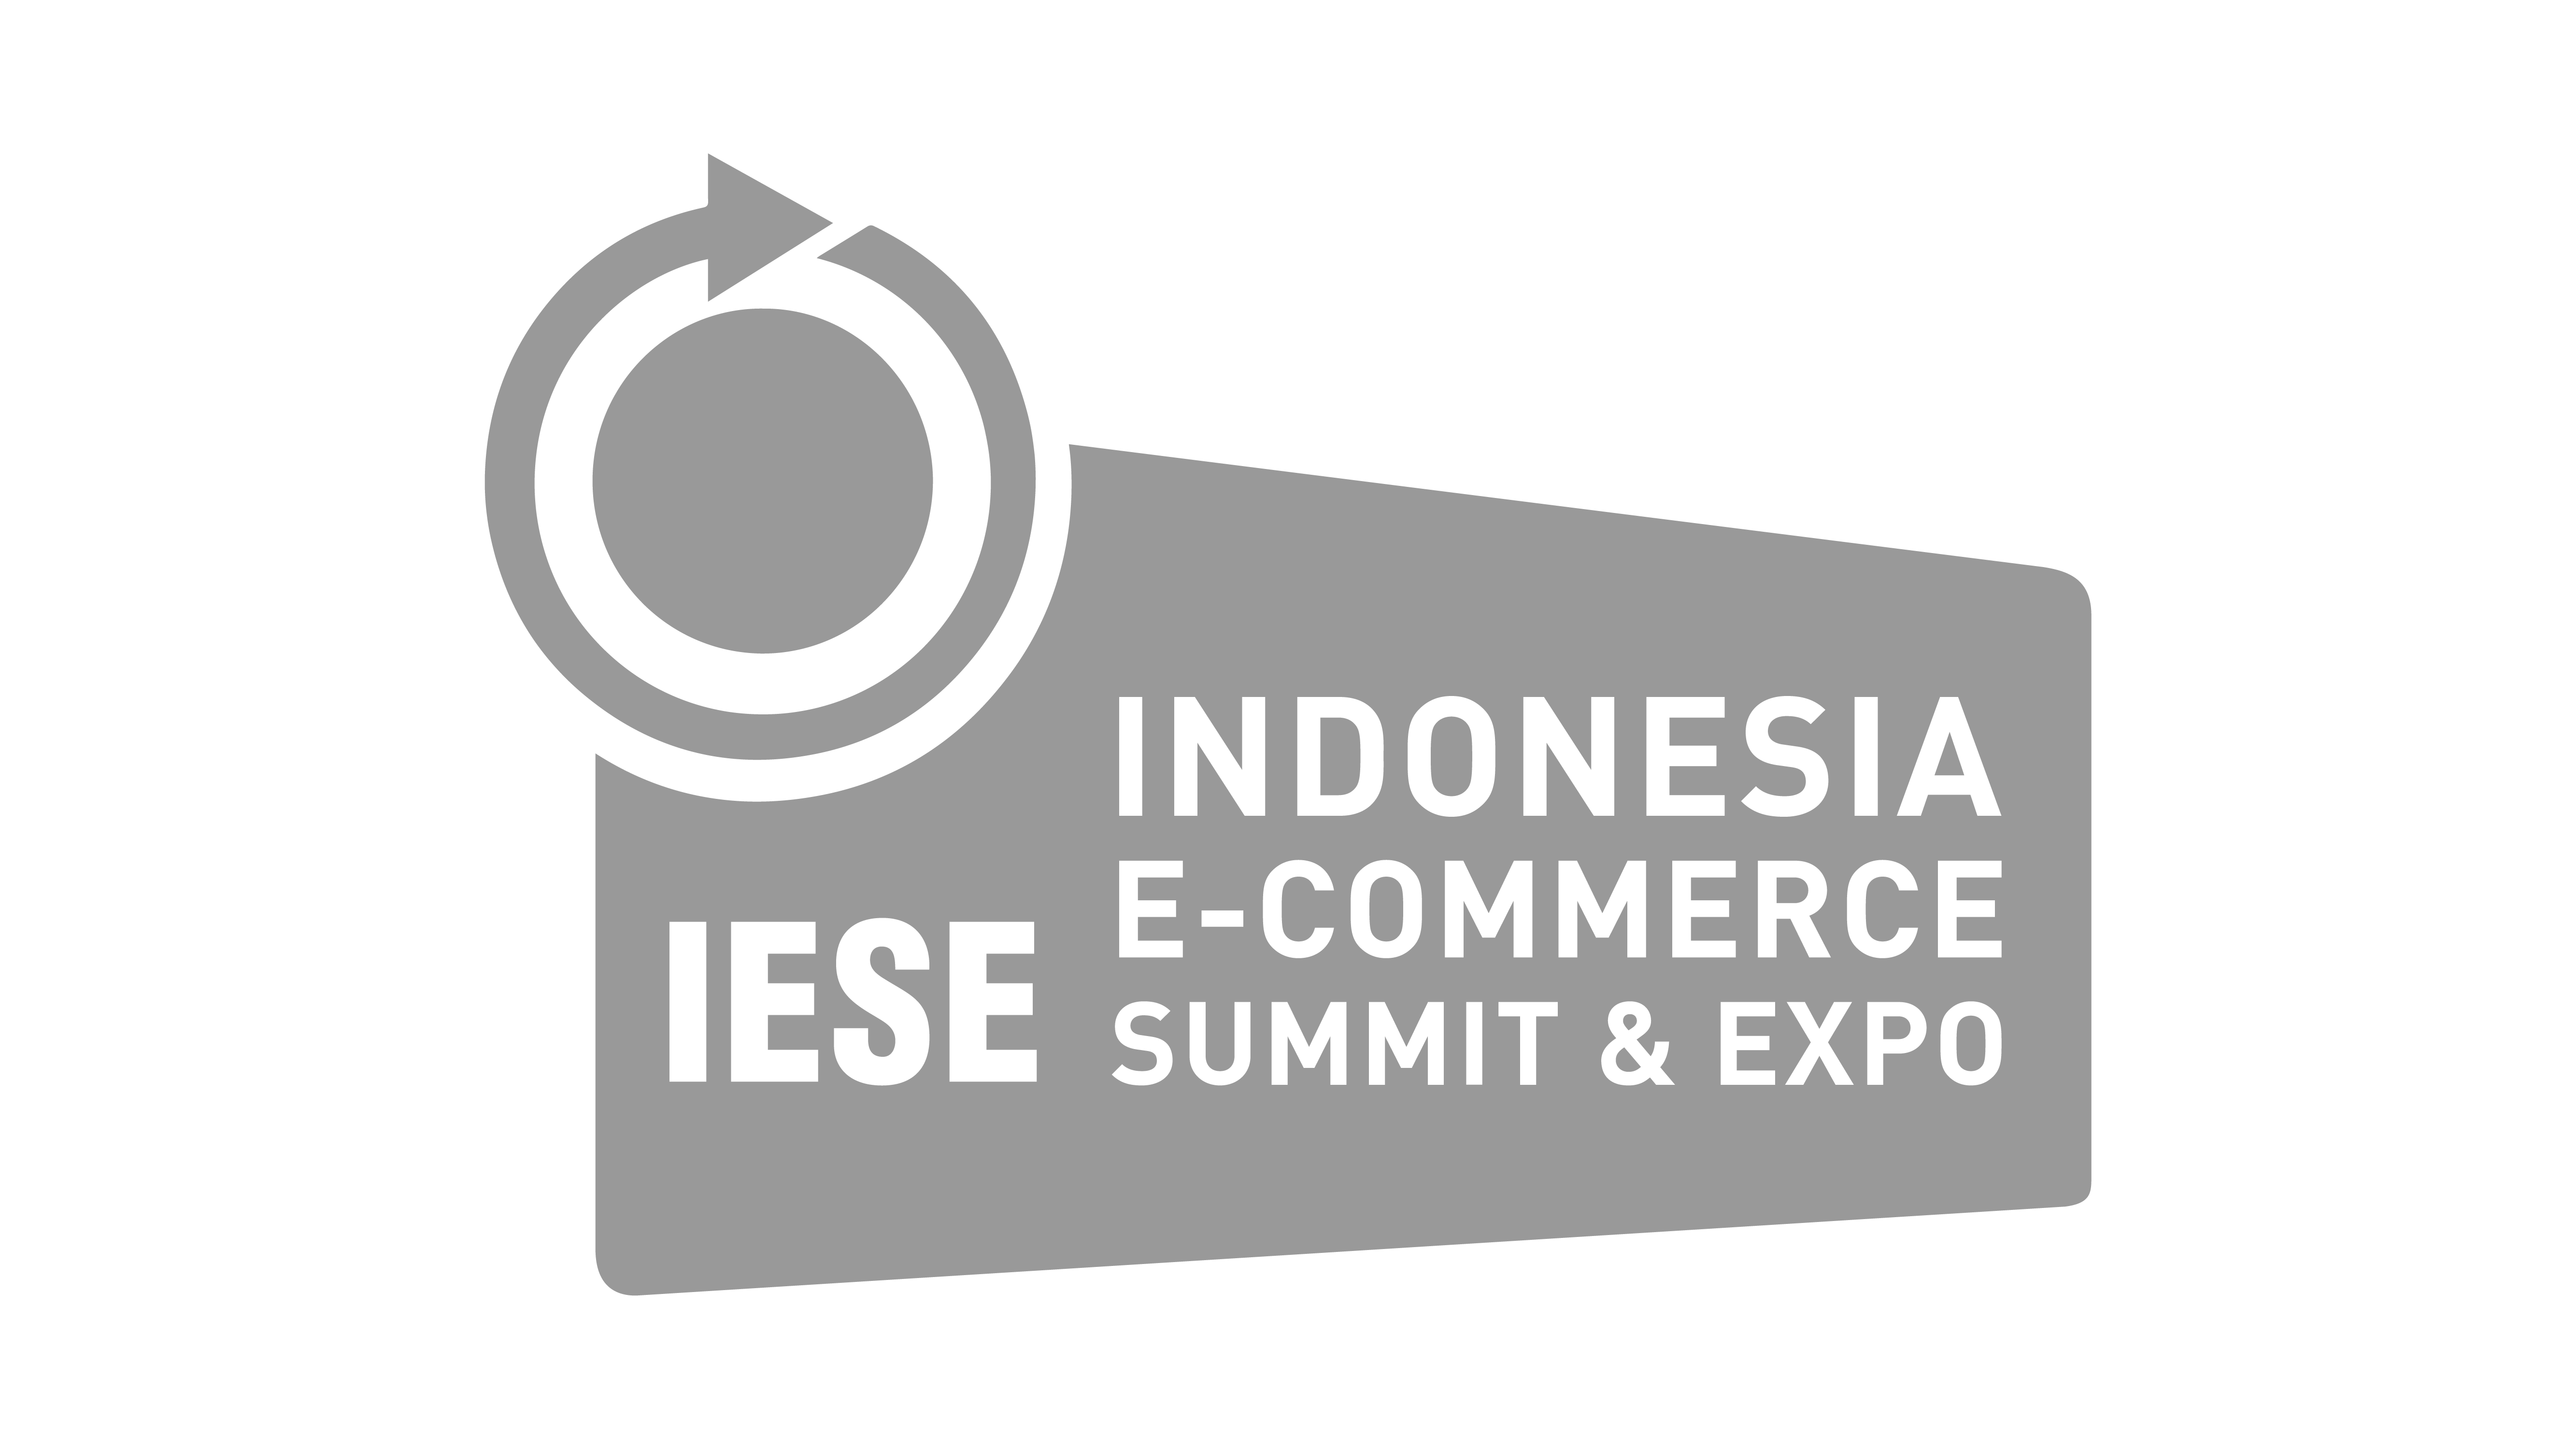 The 3rd Indonesia E-Commerce Summit & Expo (IESE) 2018